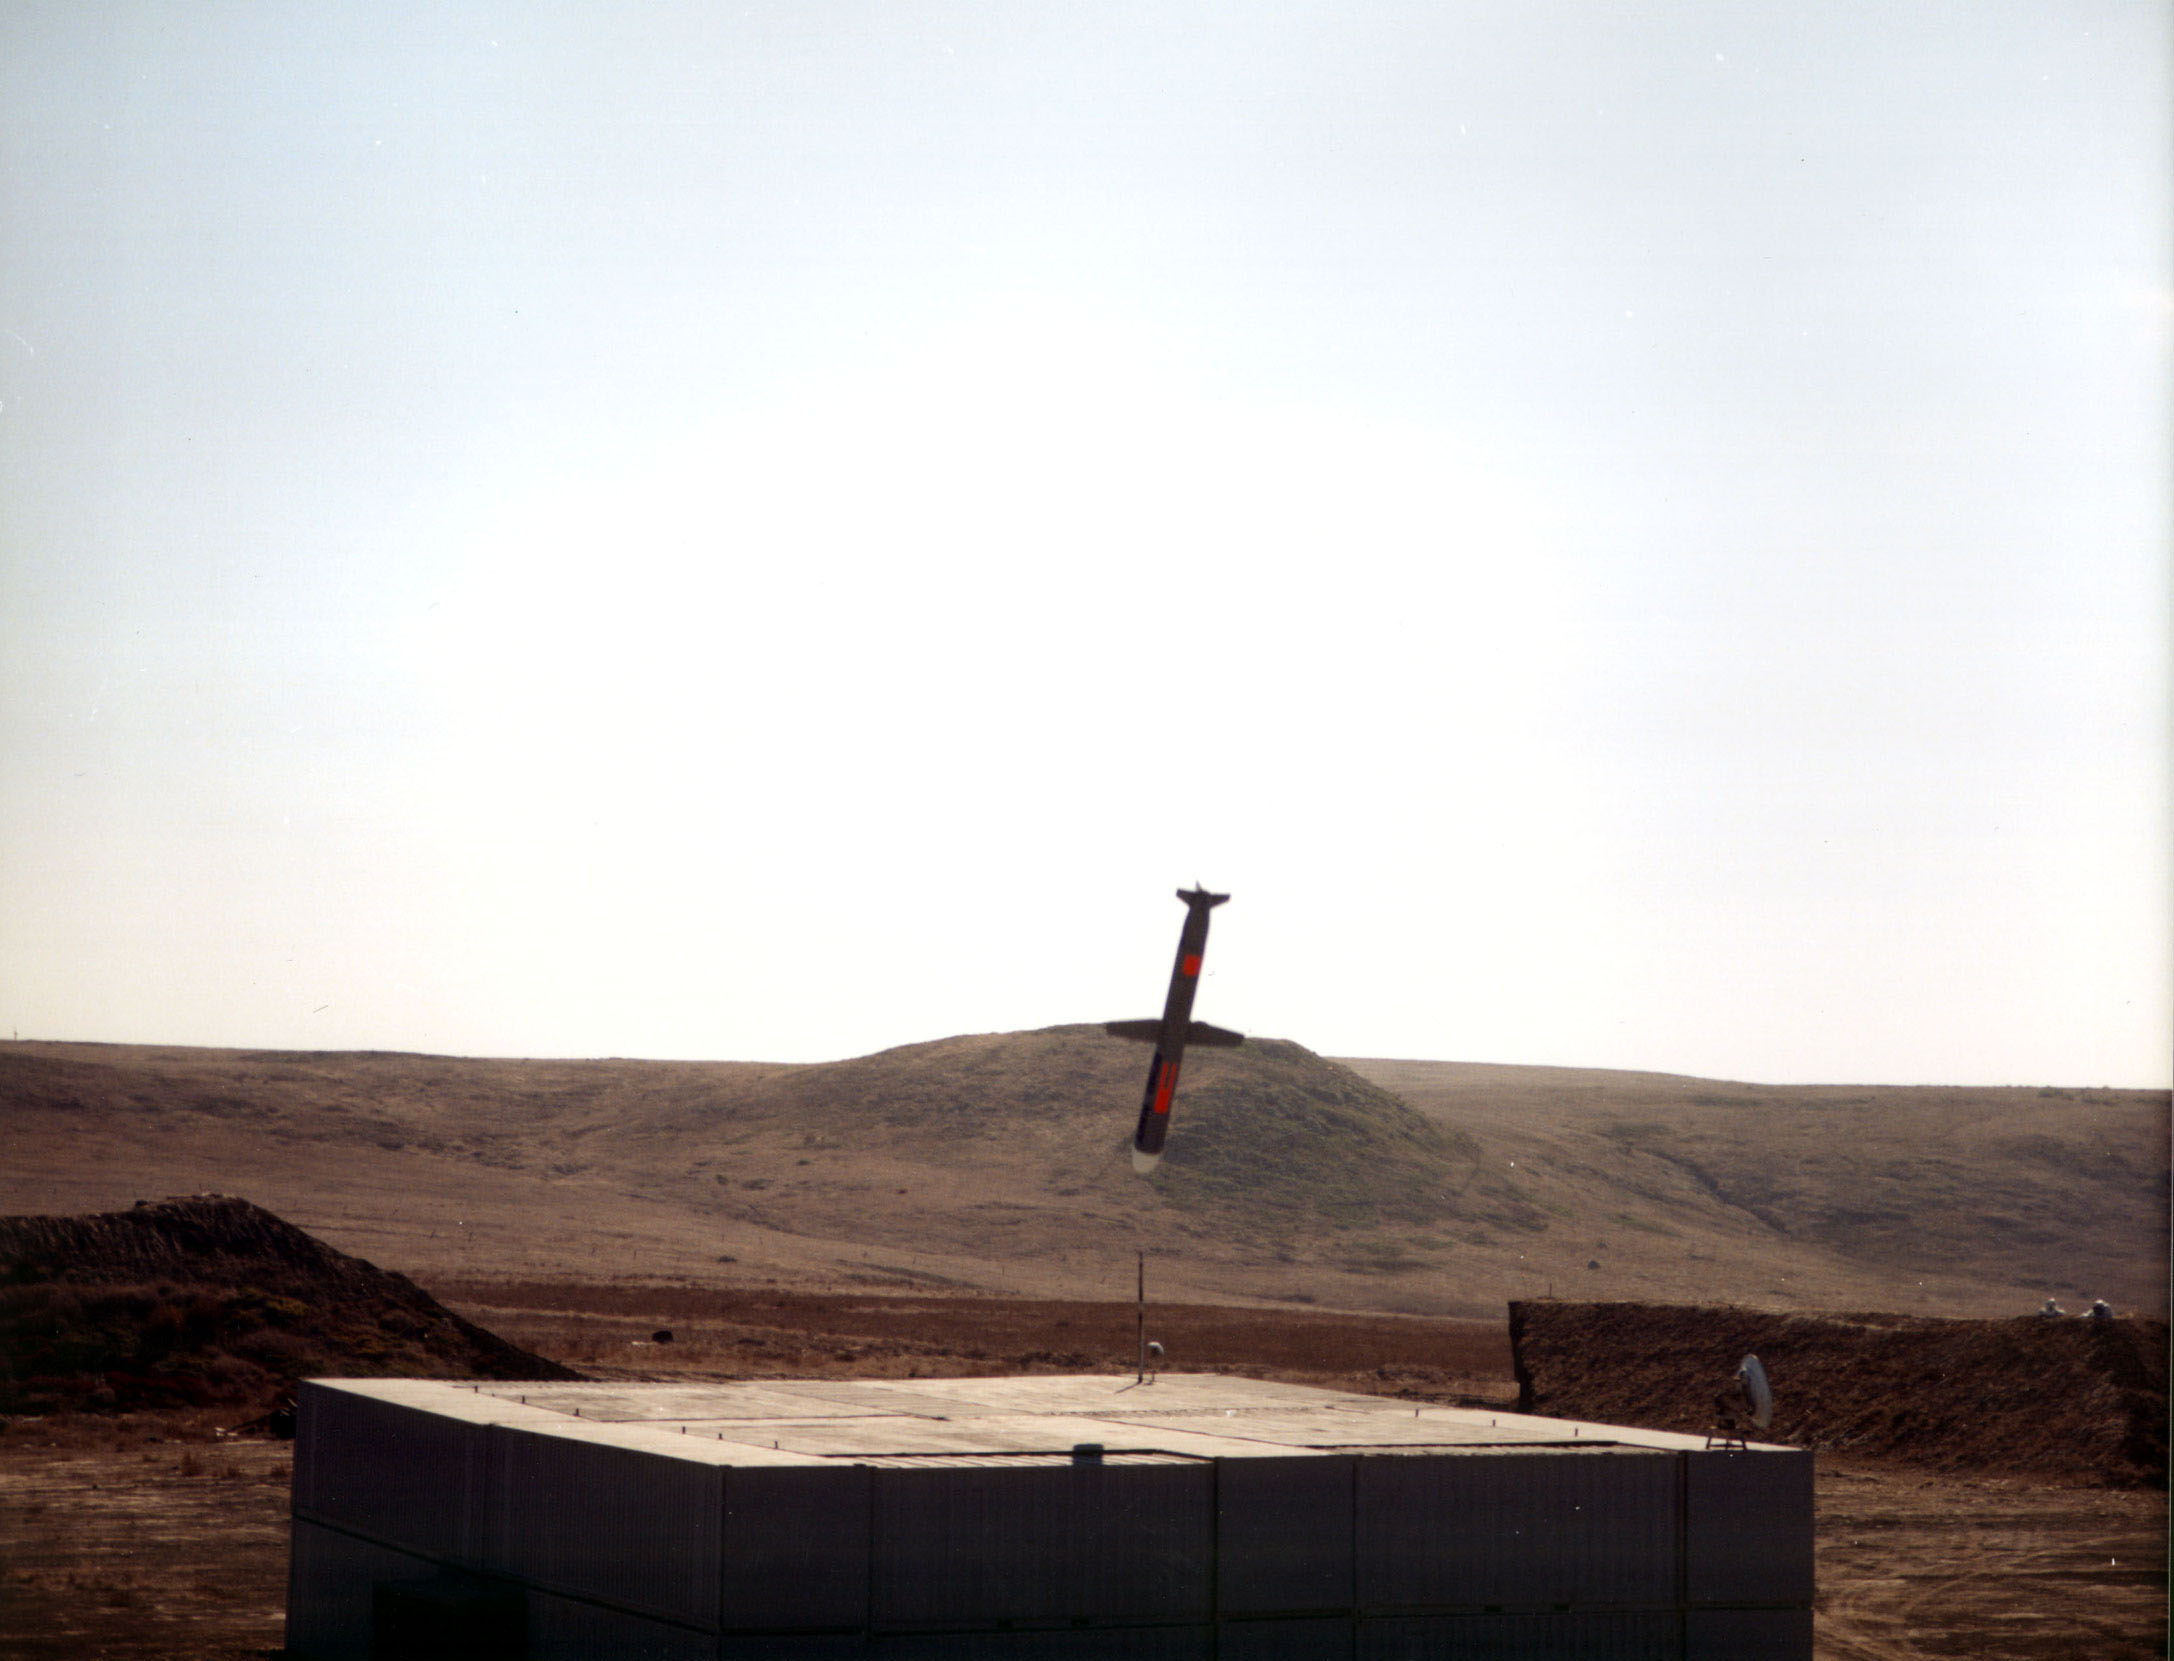 _Tomahawk_Land_Attack_Missile_Hits_the_Target_MOD_45138117.jpg